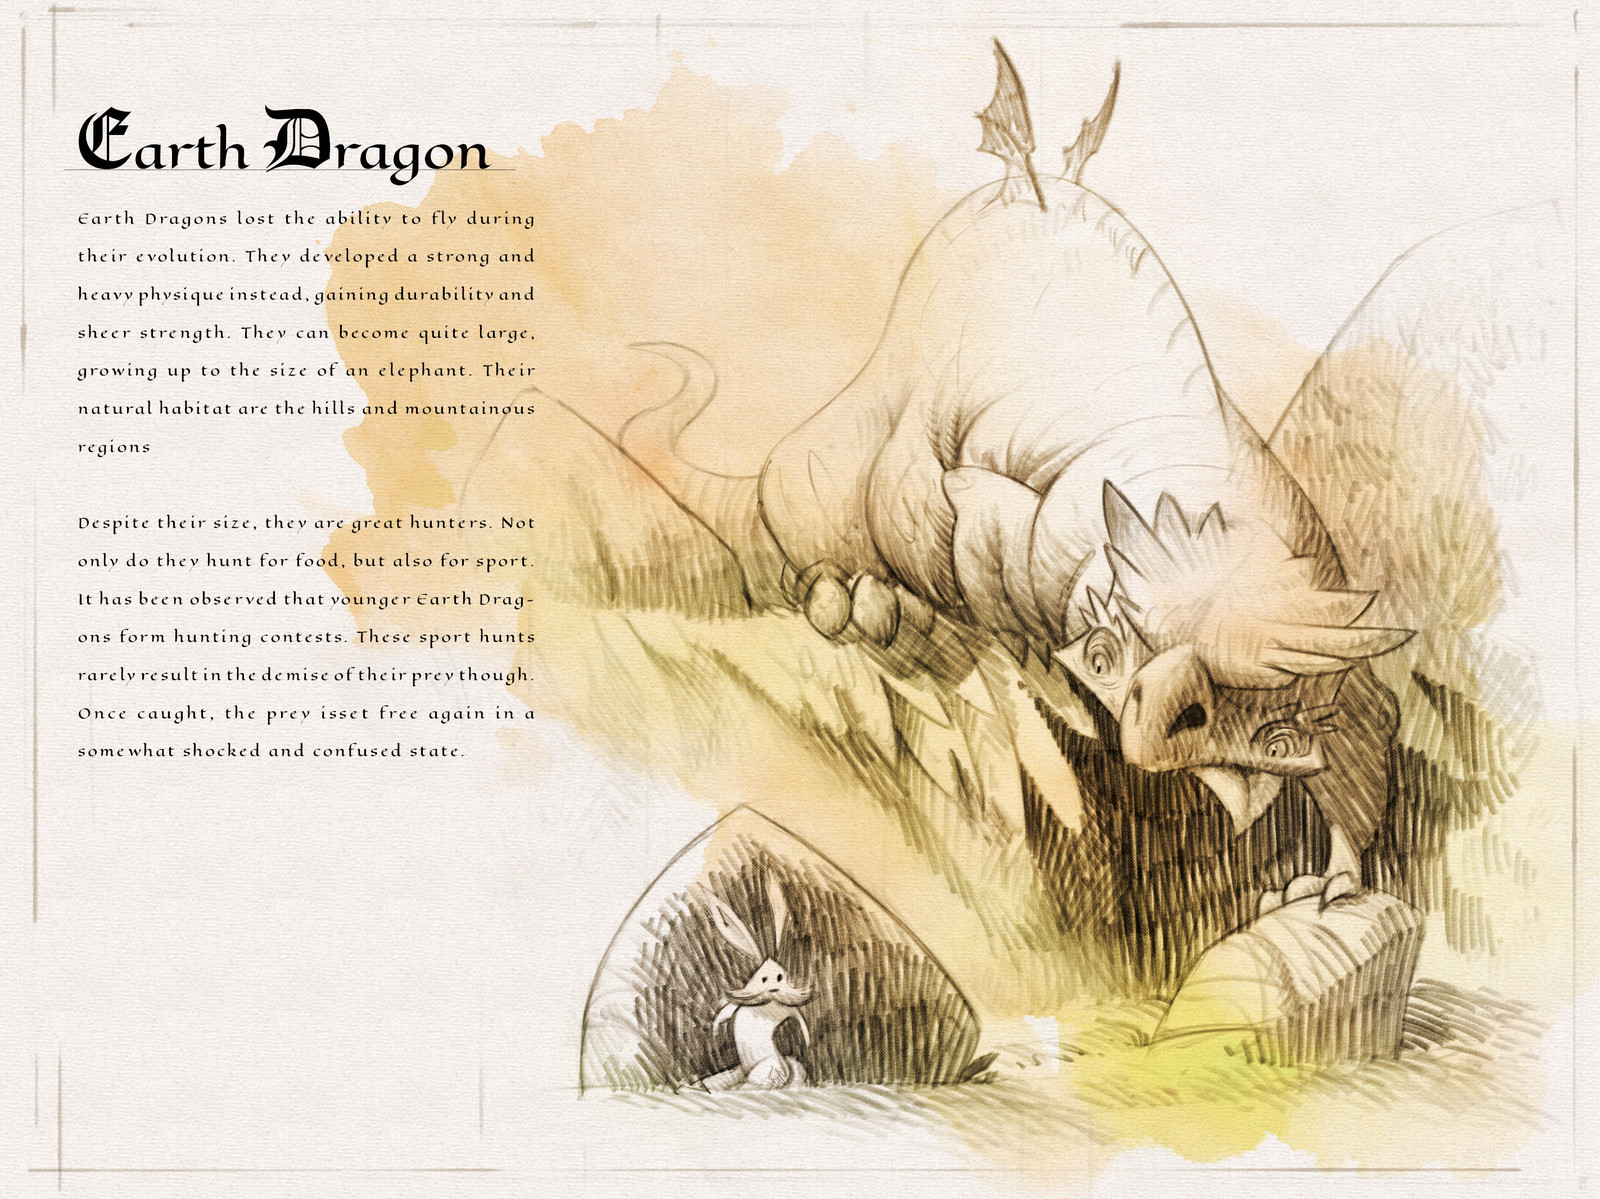 Page one of the  Dragon Compendium showing and describing the Earth Dragon